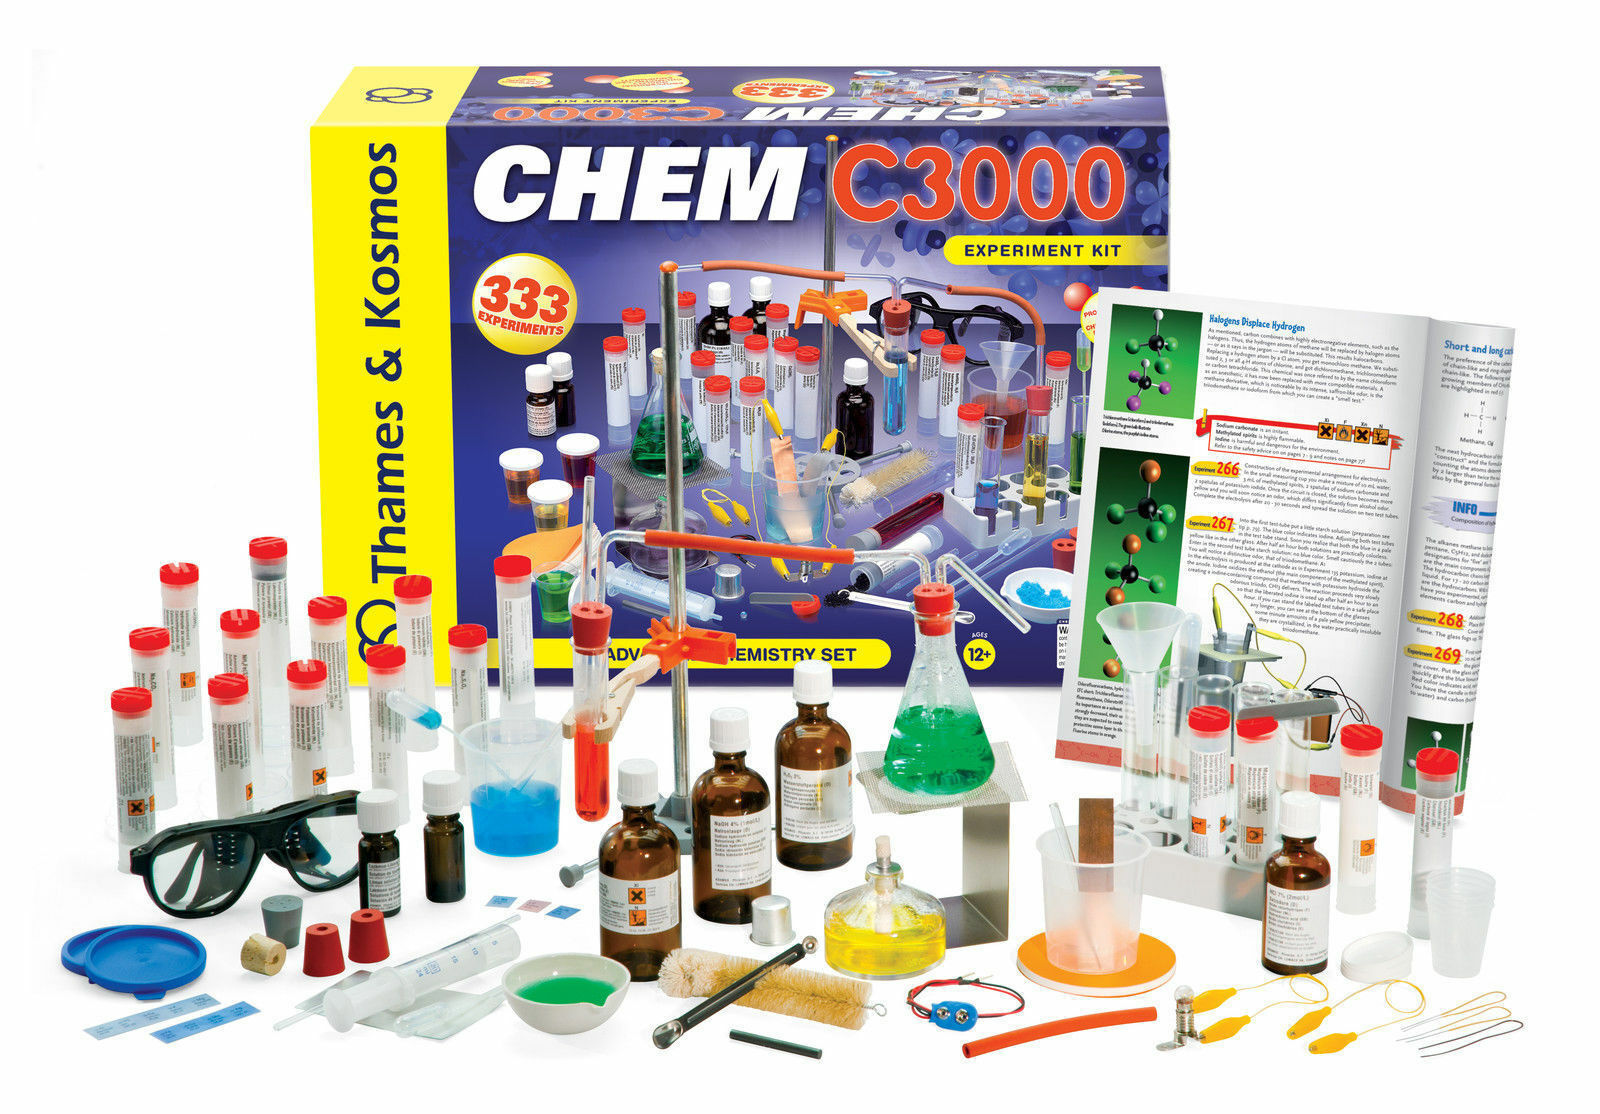 best chemistry sets the chem c3000 from thames and kosmos offers experiments in a number of areas including combustion acids and bases polymers and organic chemistry